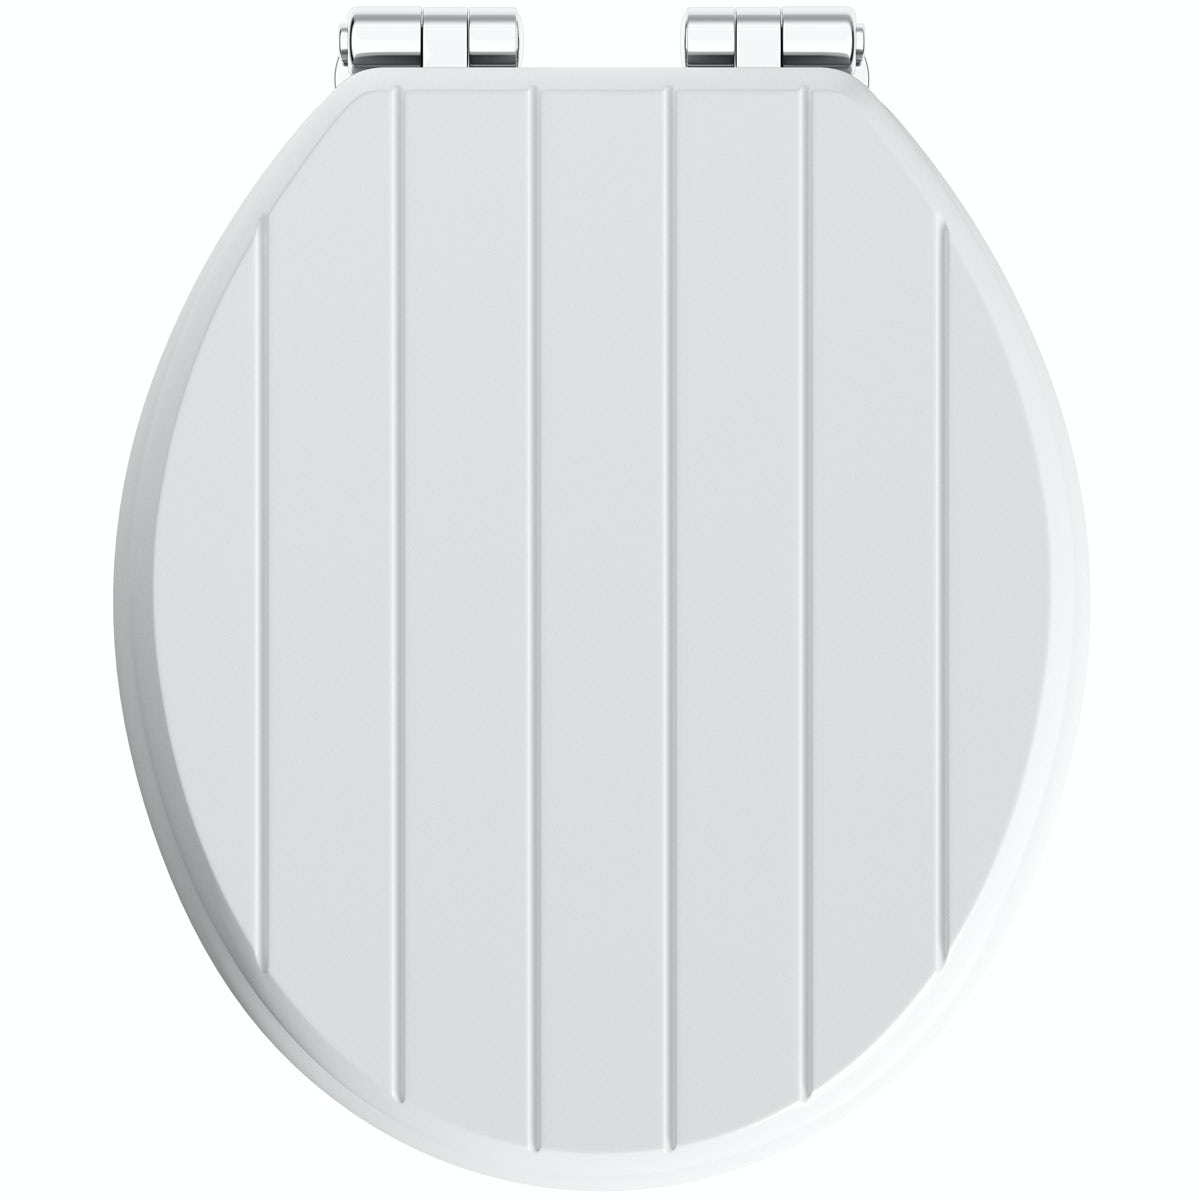 Fine The Bath Co Traditional White Engineered Wood Tongue And Groove Toilet Seat With Top Fixing Soft Close Hinge Onthecornerstone Fun Painted Chair Ideas Images Onthecornerstoneorg